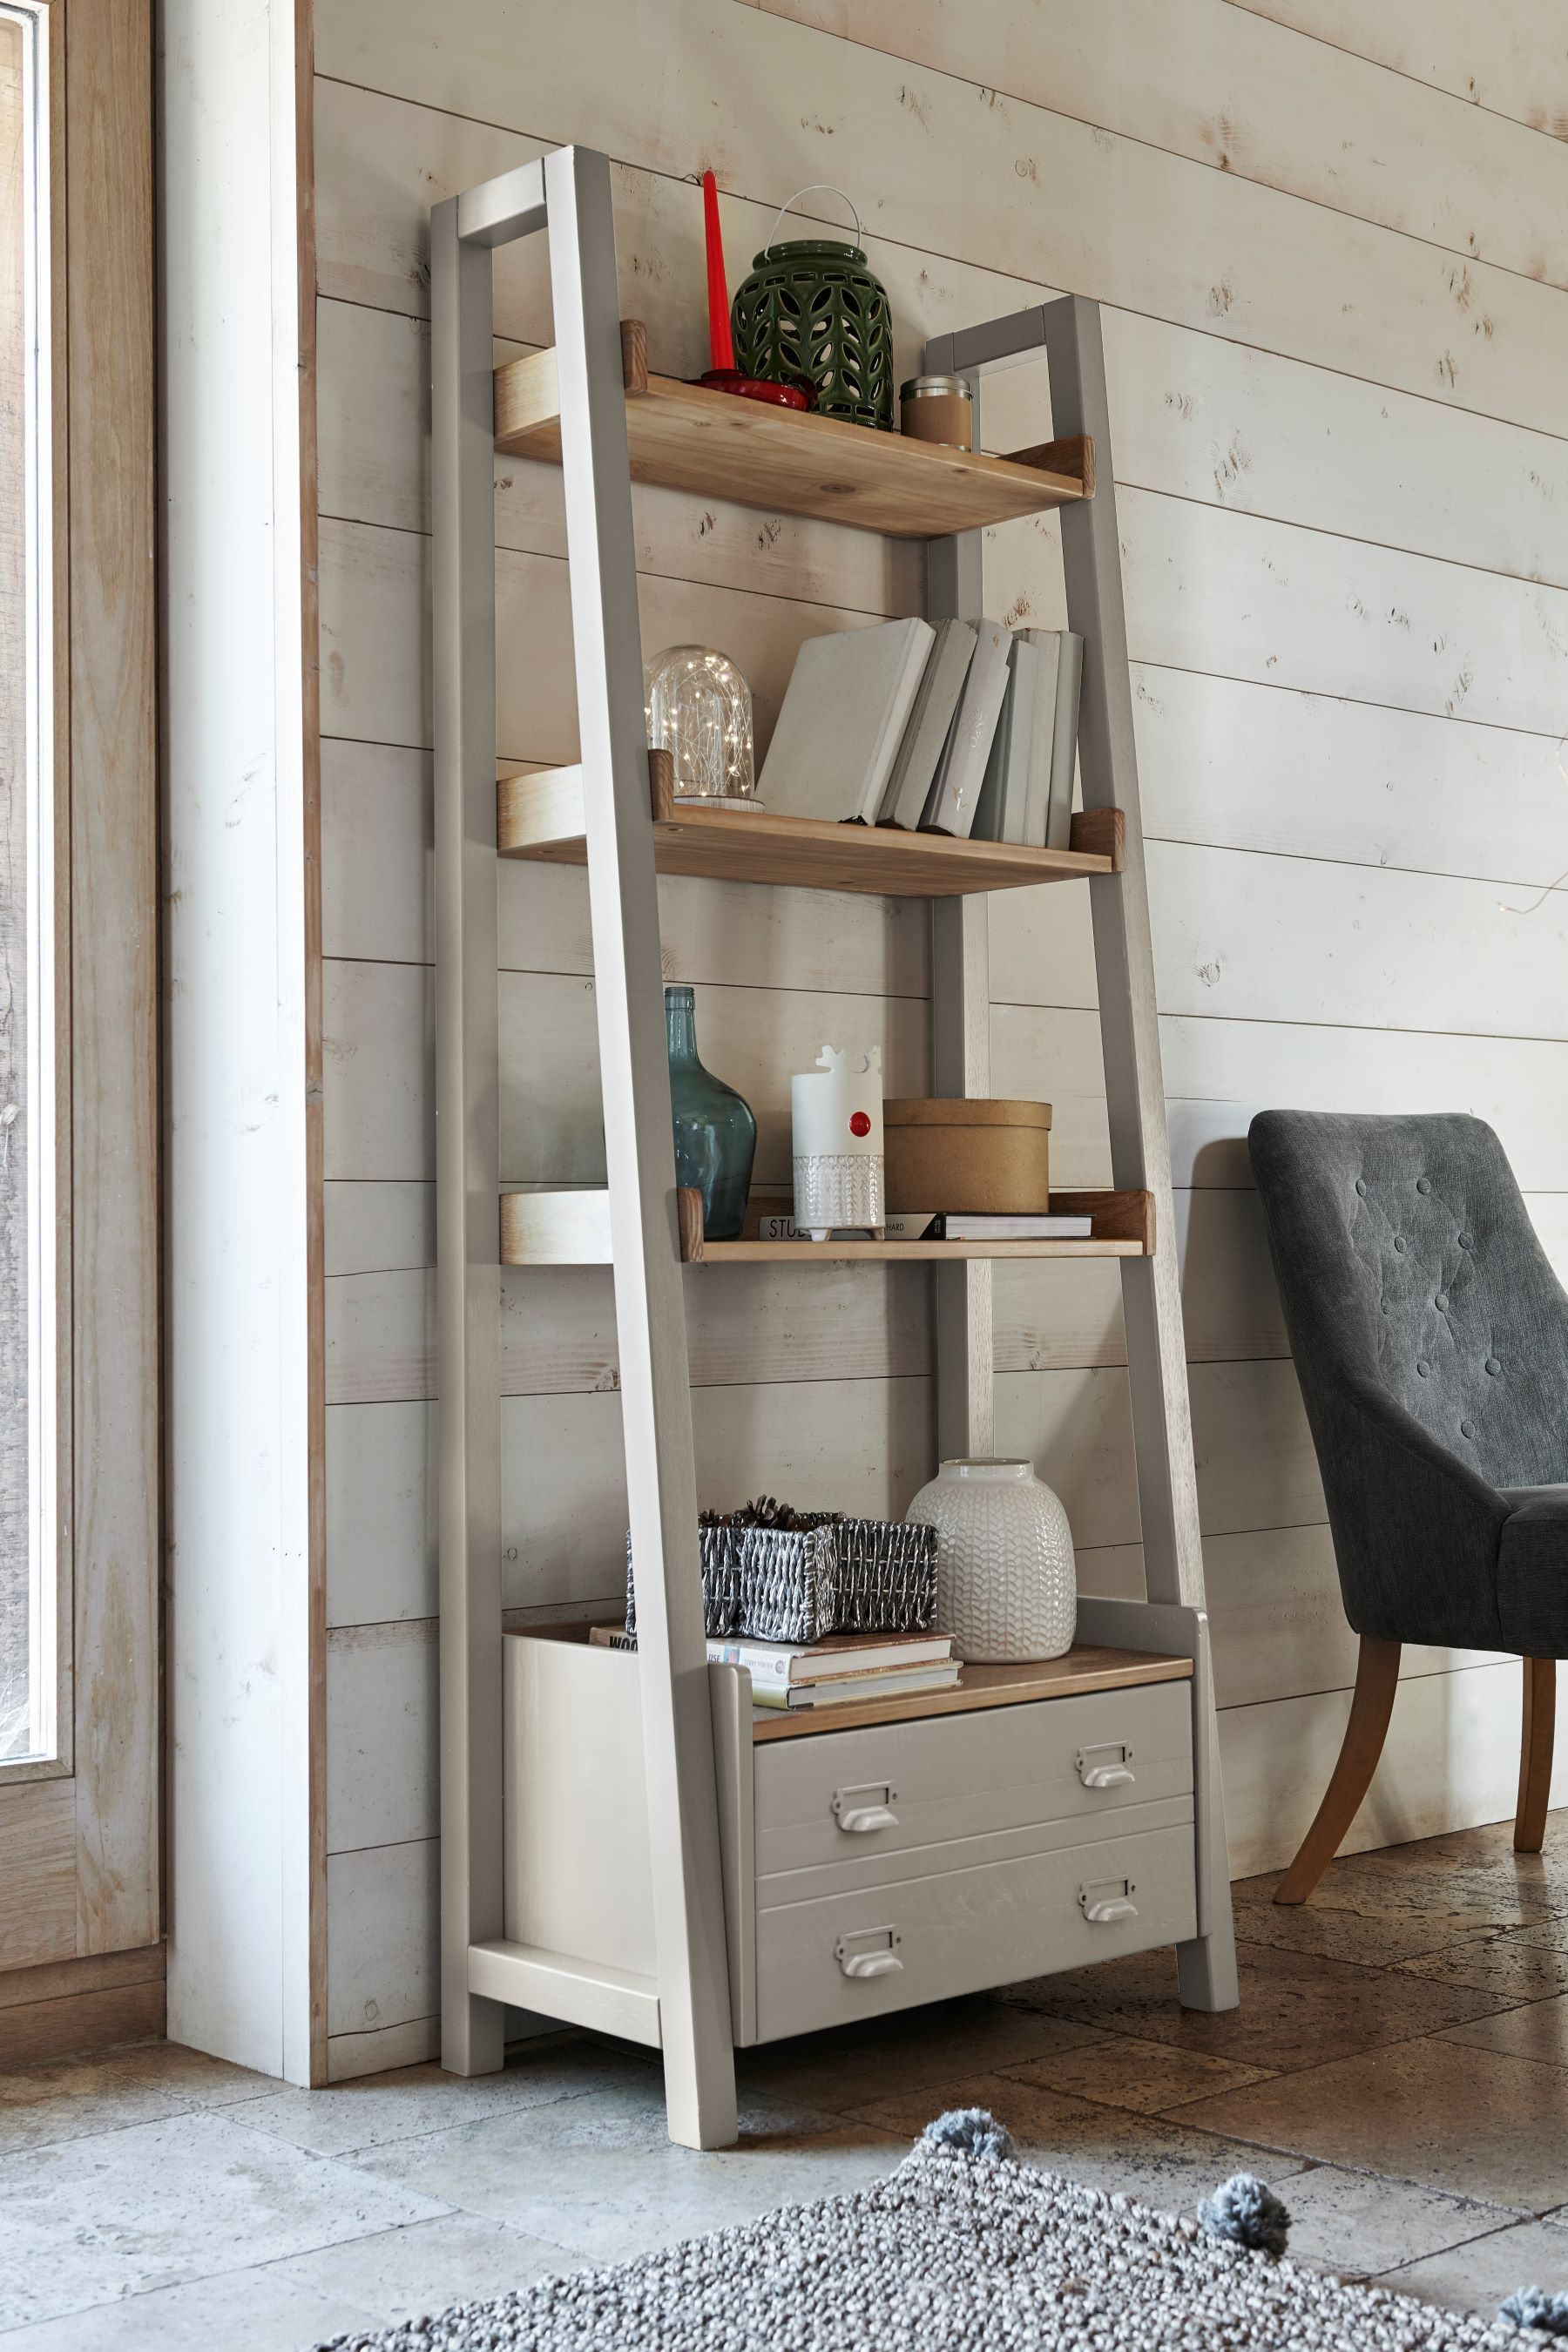 Huxley Painted Ladder Shelves   House Designs In 2019